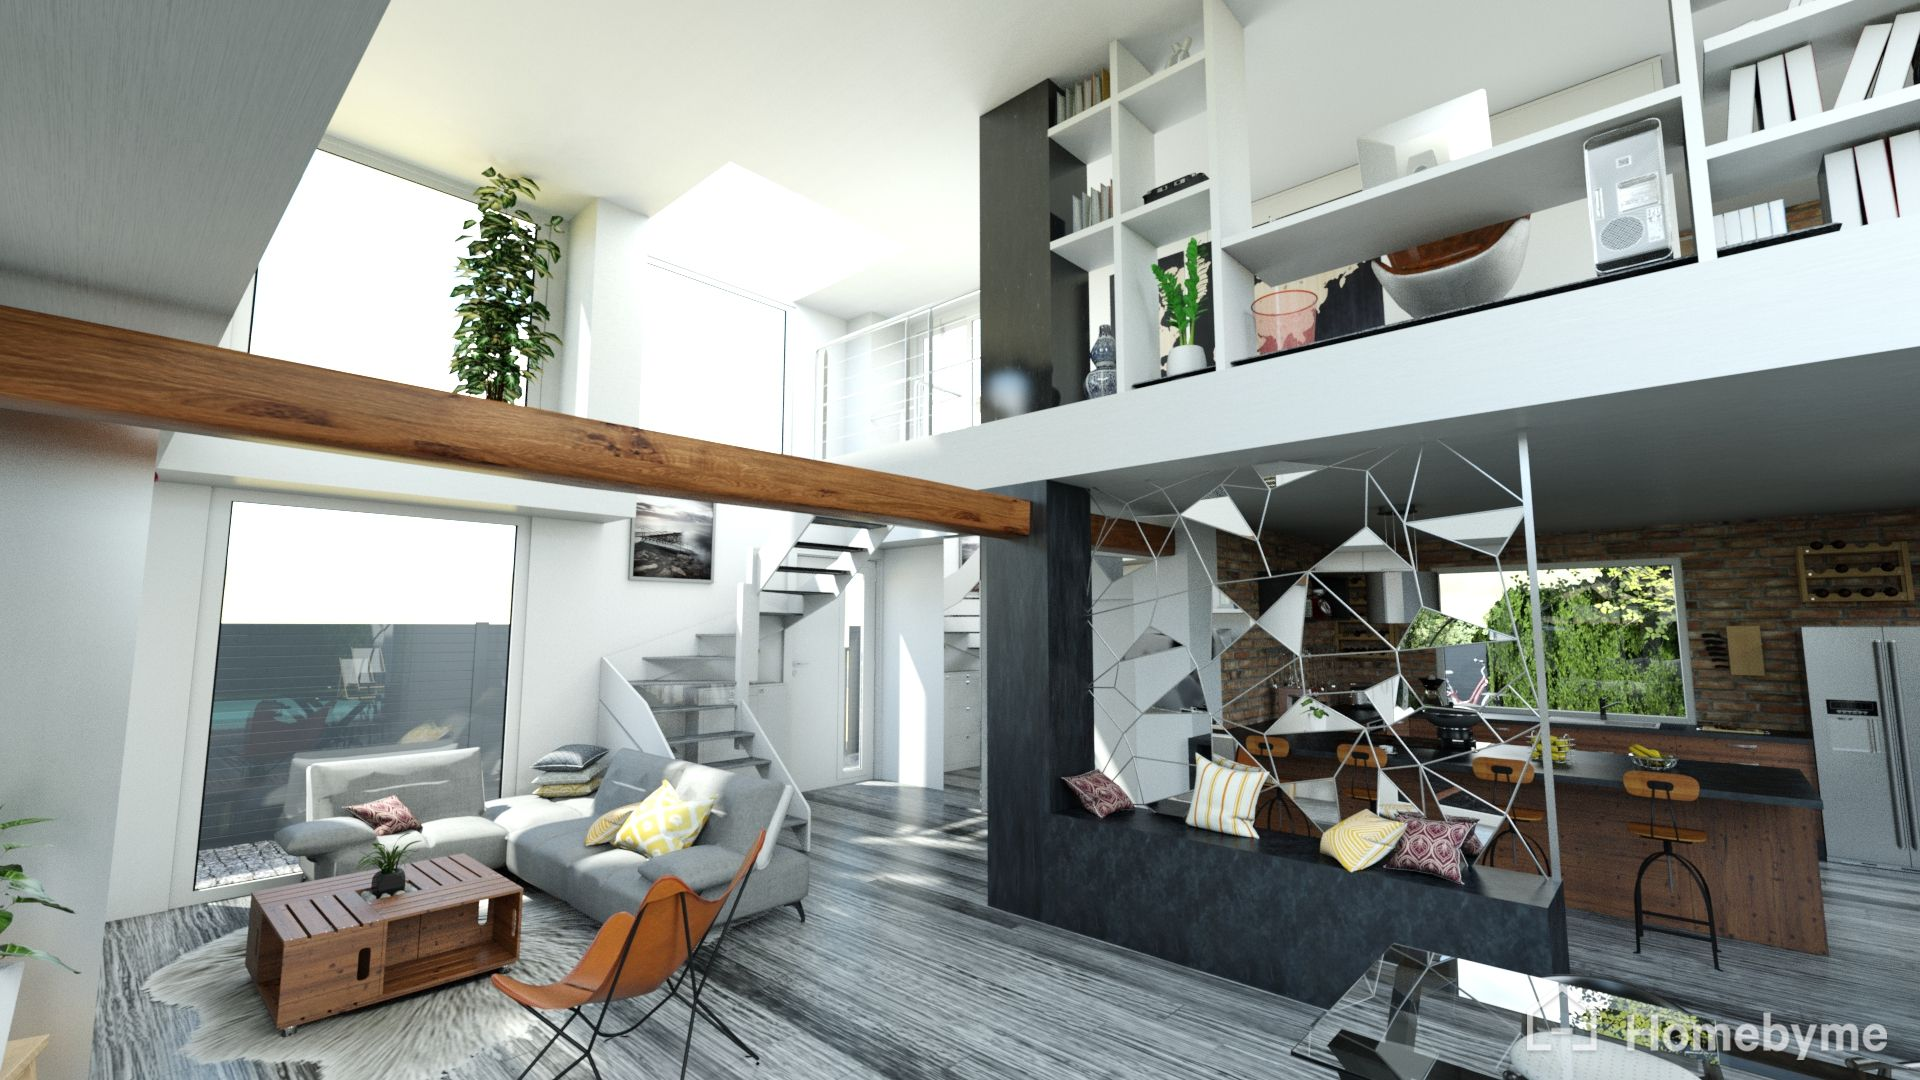 Bring your interior design ideas to life with HomeByMe 3D